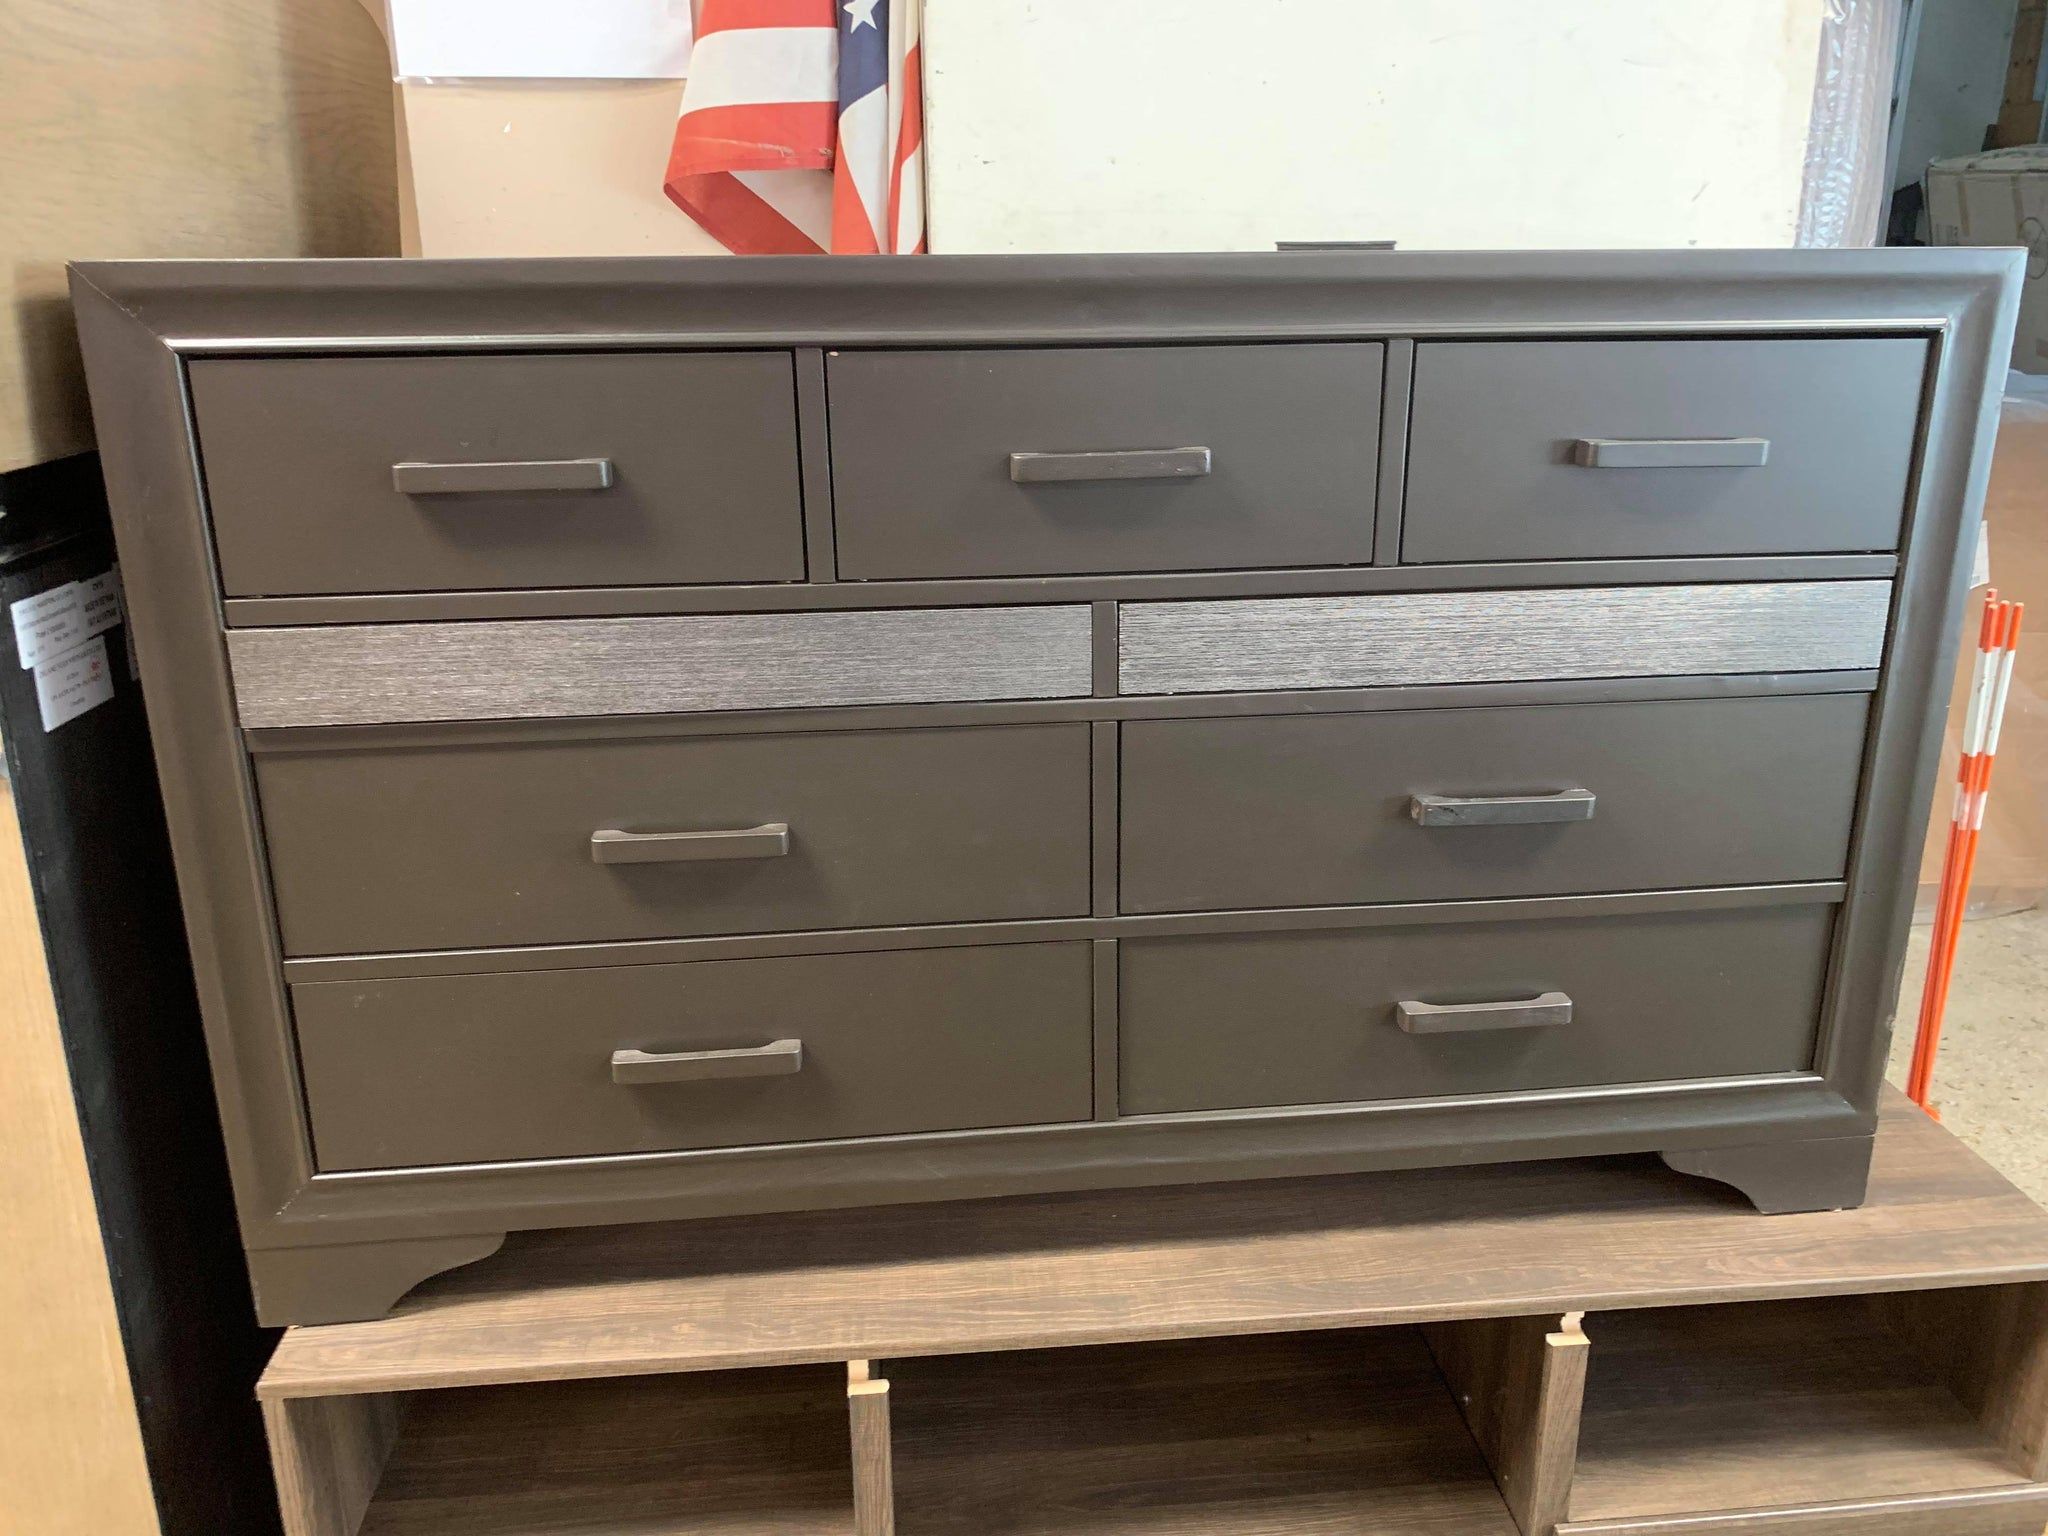 Wayfair Low Dresser